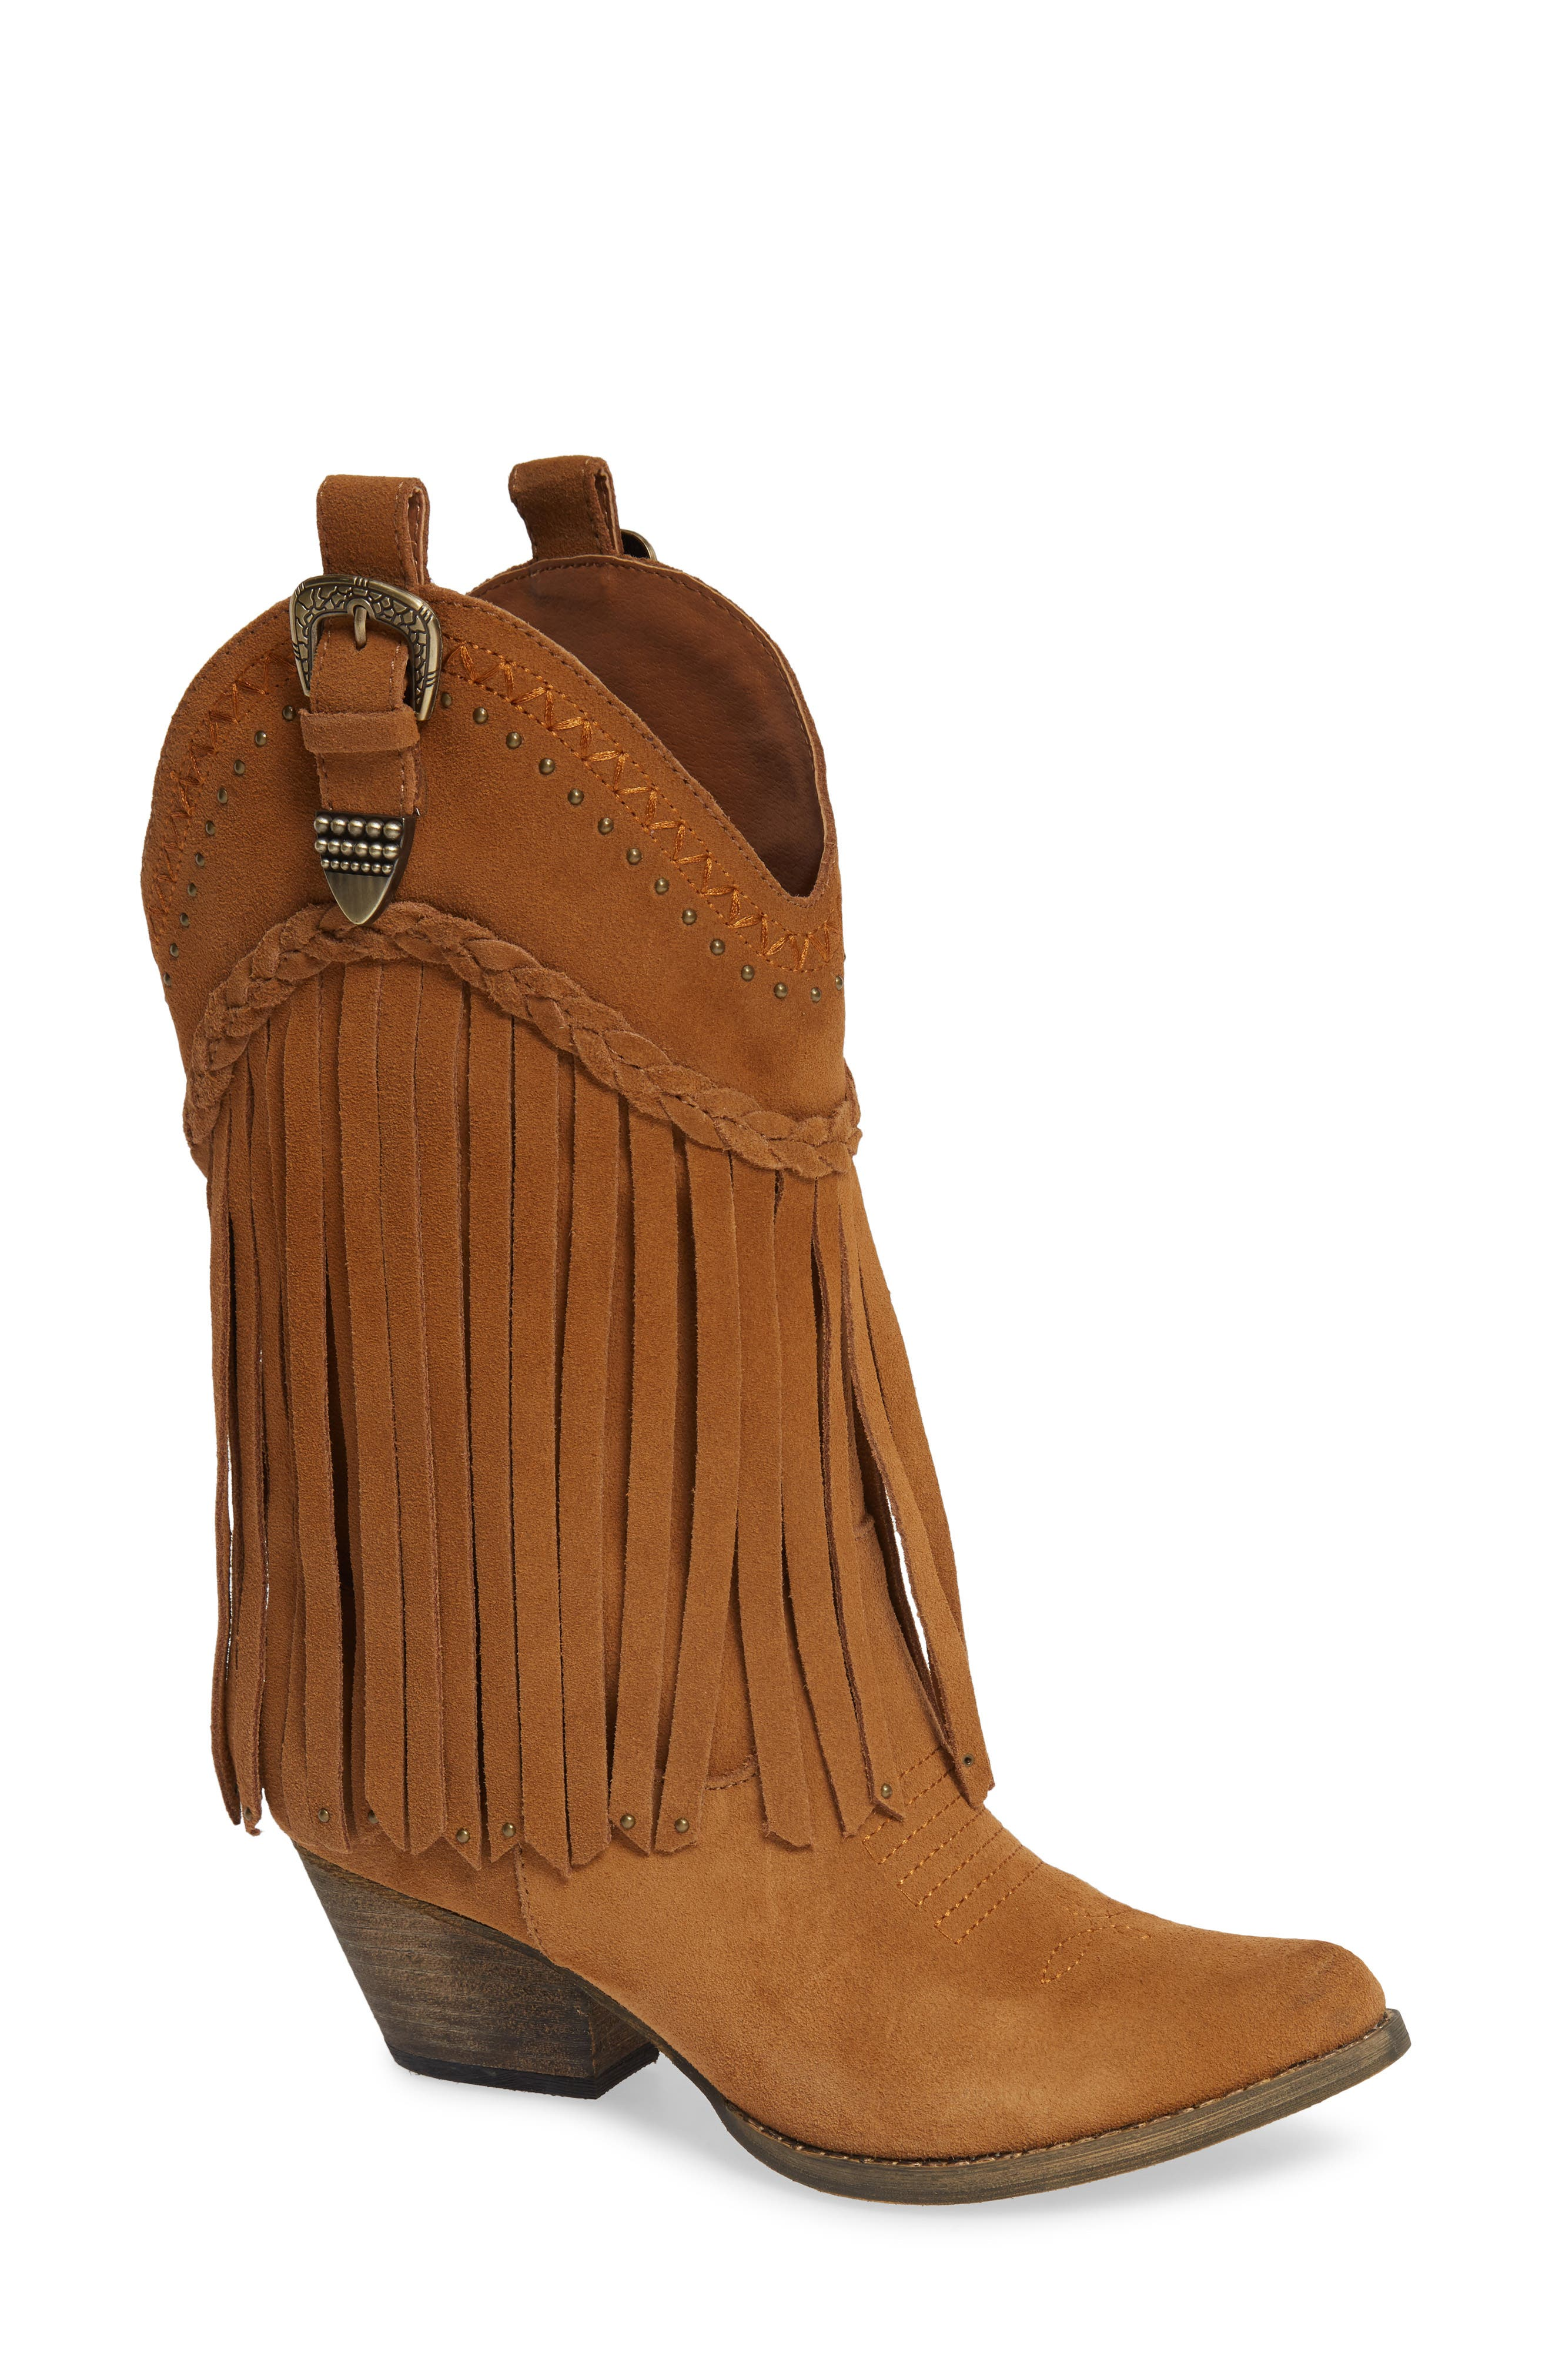 Vintage Boots- Buy Winter Retro Boots Womens Very Volatile Anderson Fringe Western Boot Size 8 M - Brown $89.99 AT vintagedancer.com